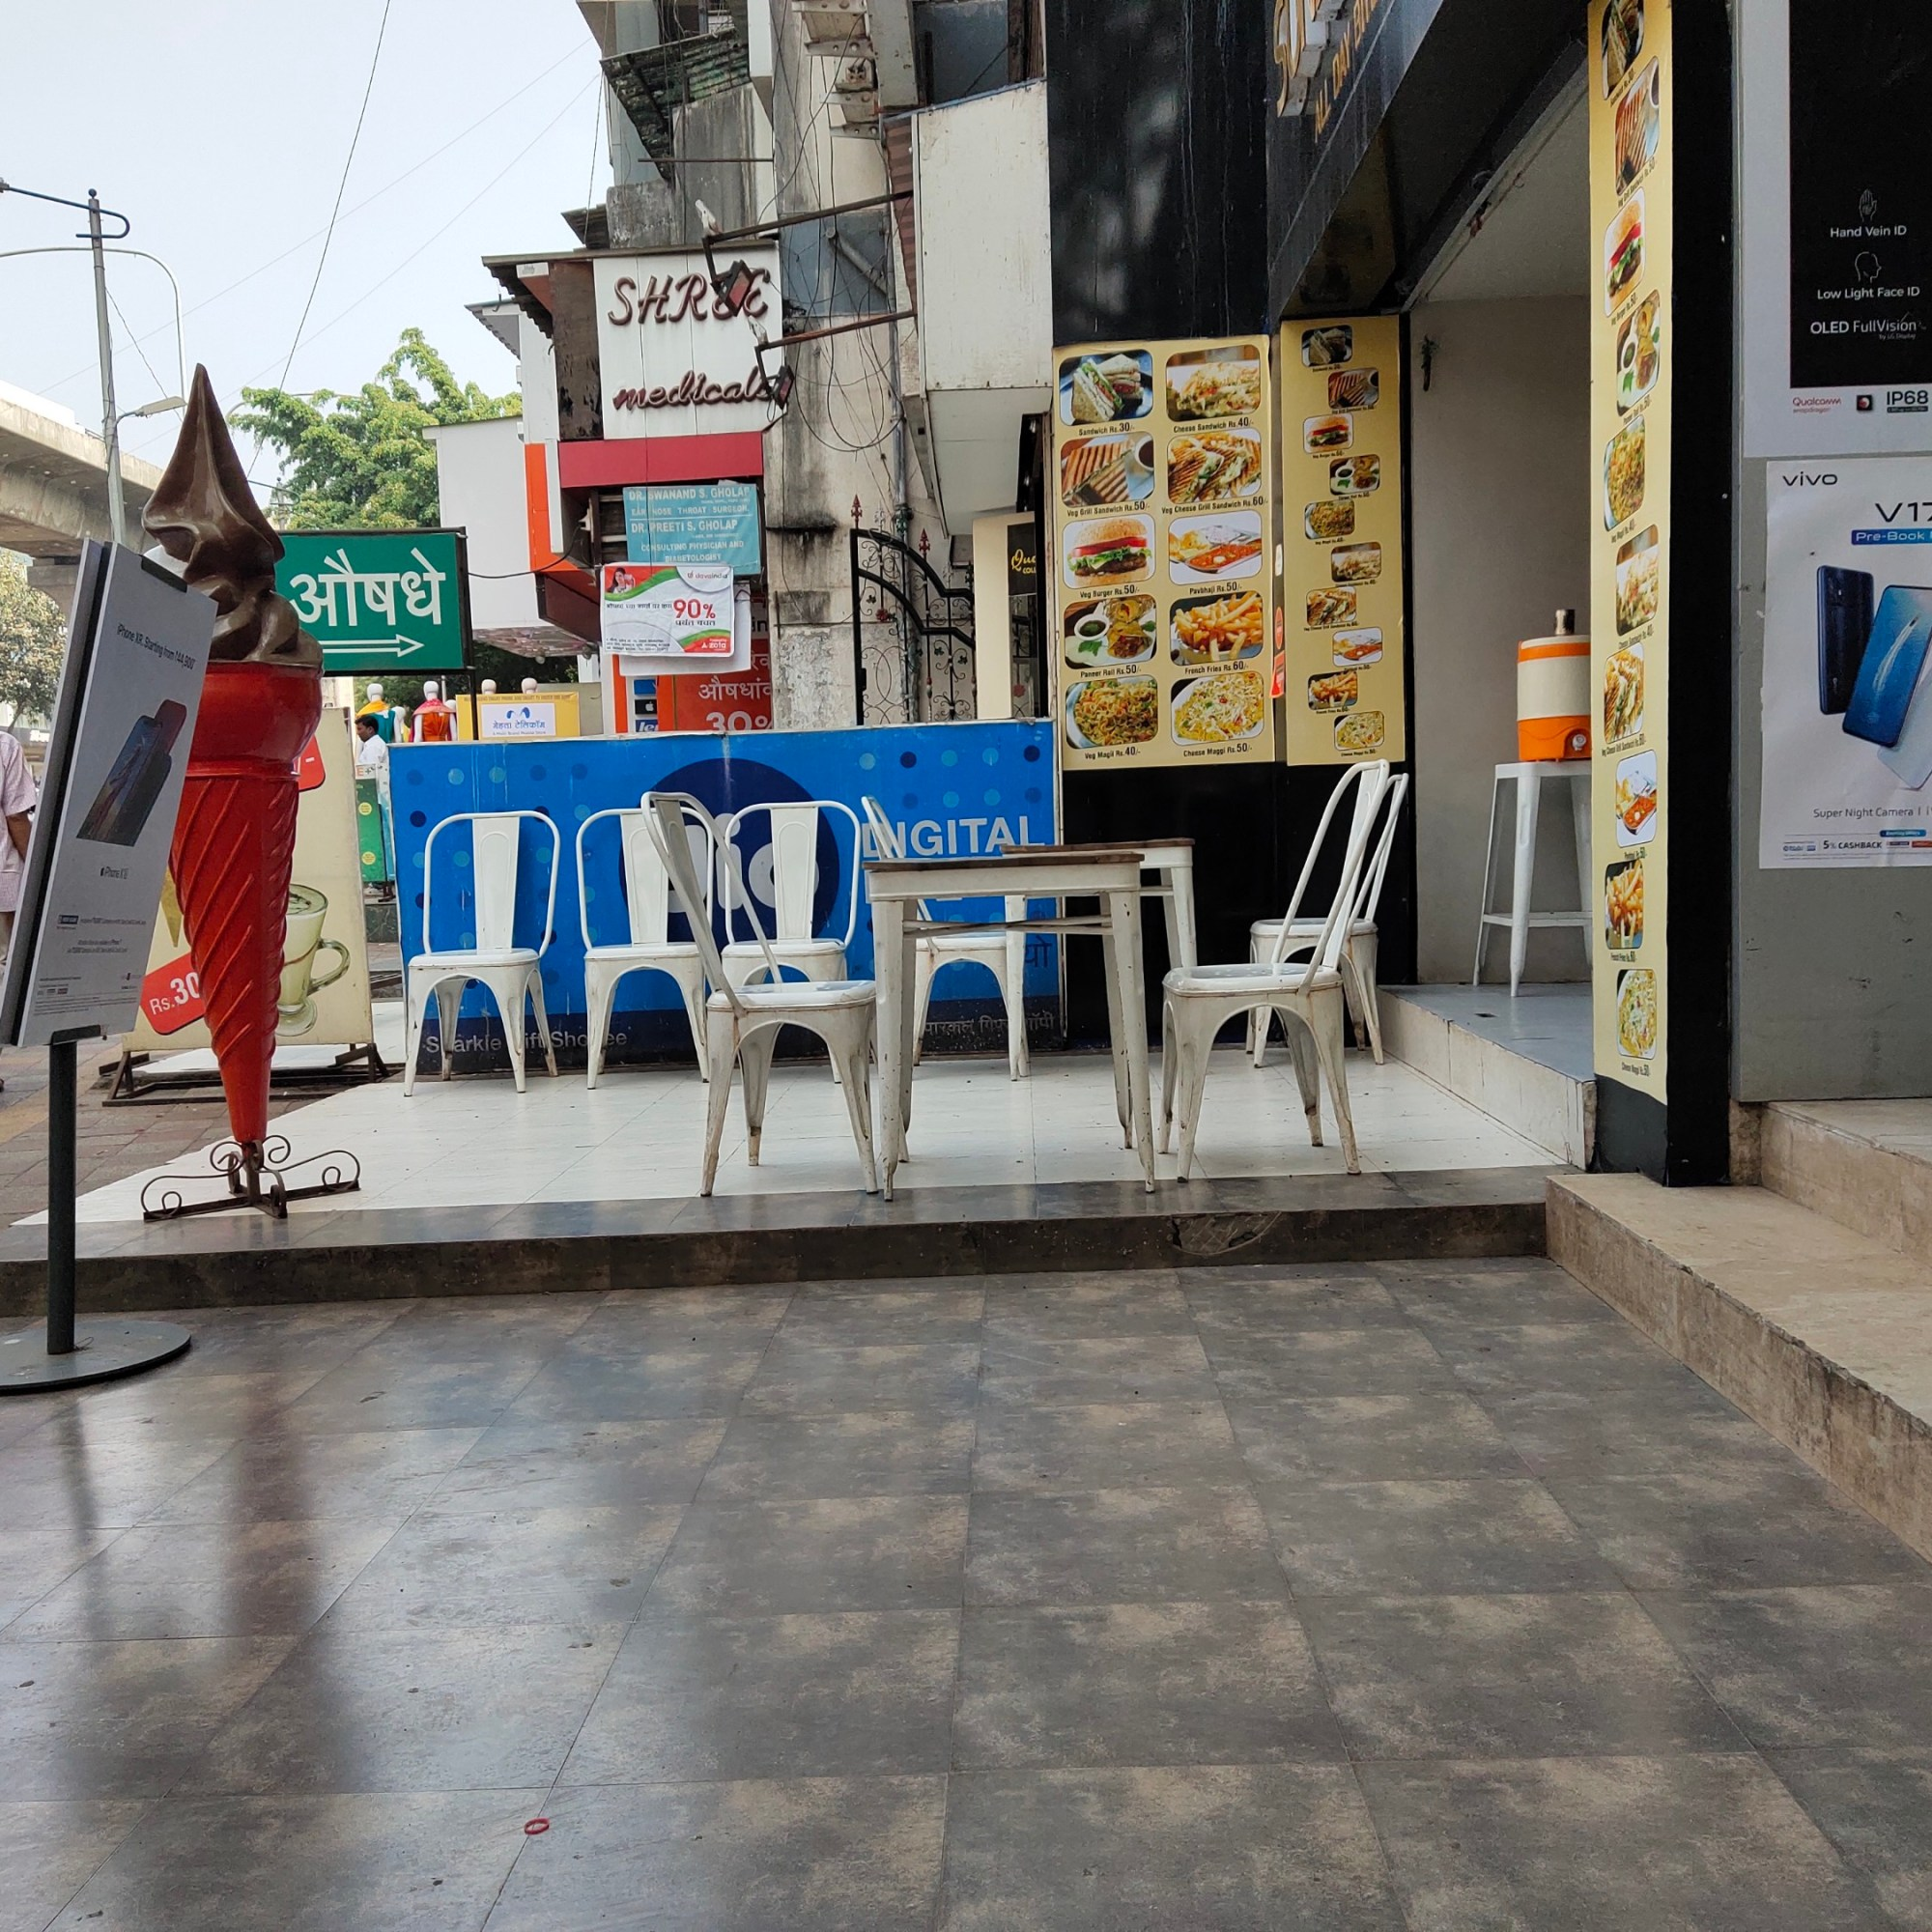 Vivo V17 Camera Sample, vivo v17 hands on,